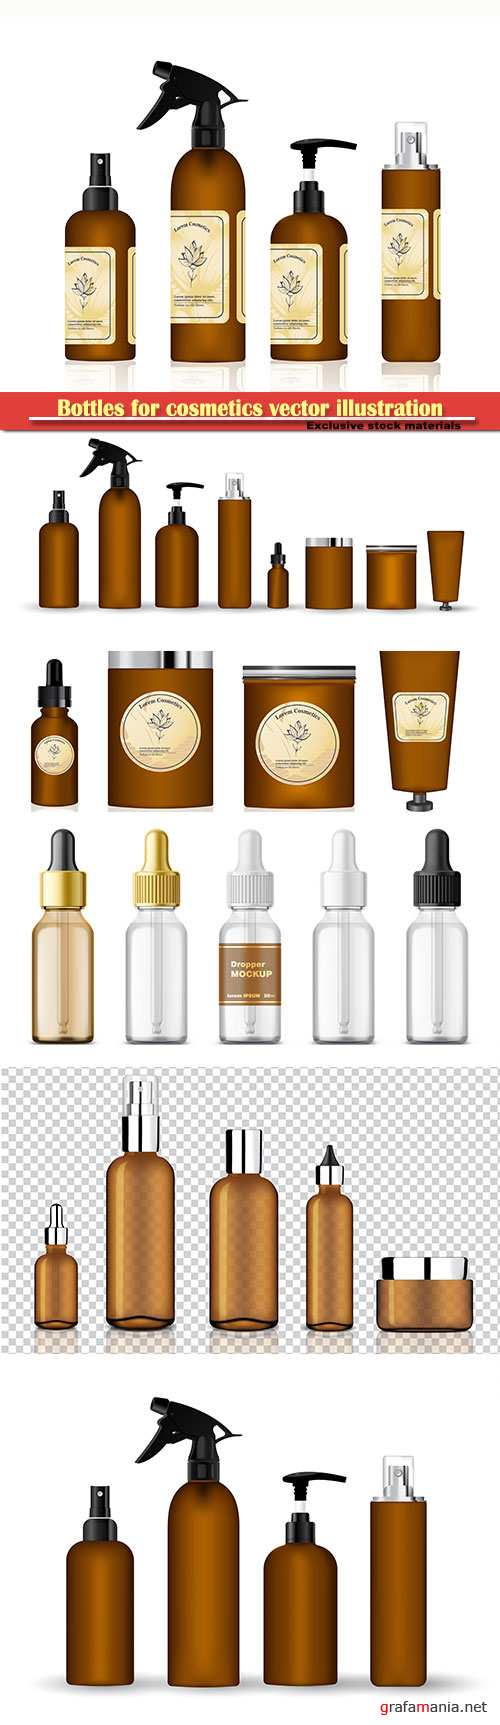 Bottles for cosmetics vector illustration